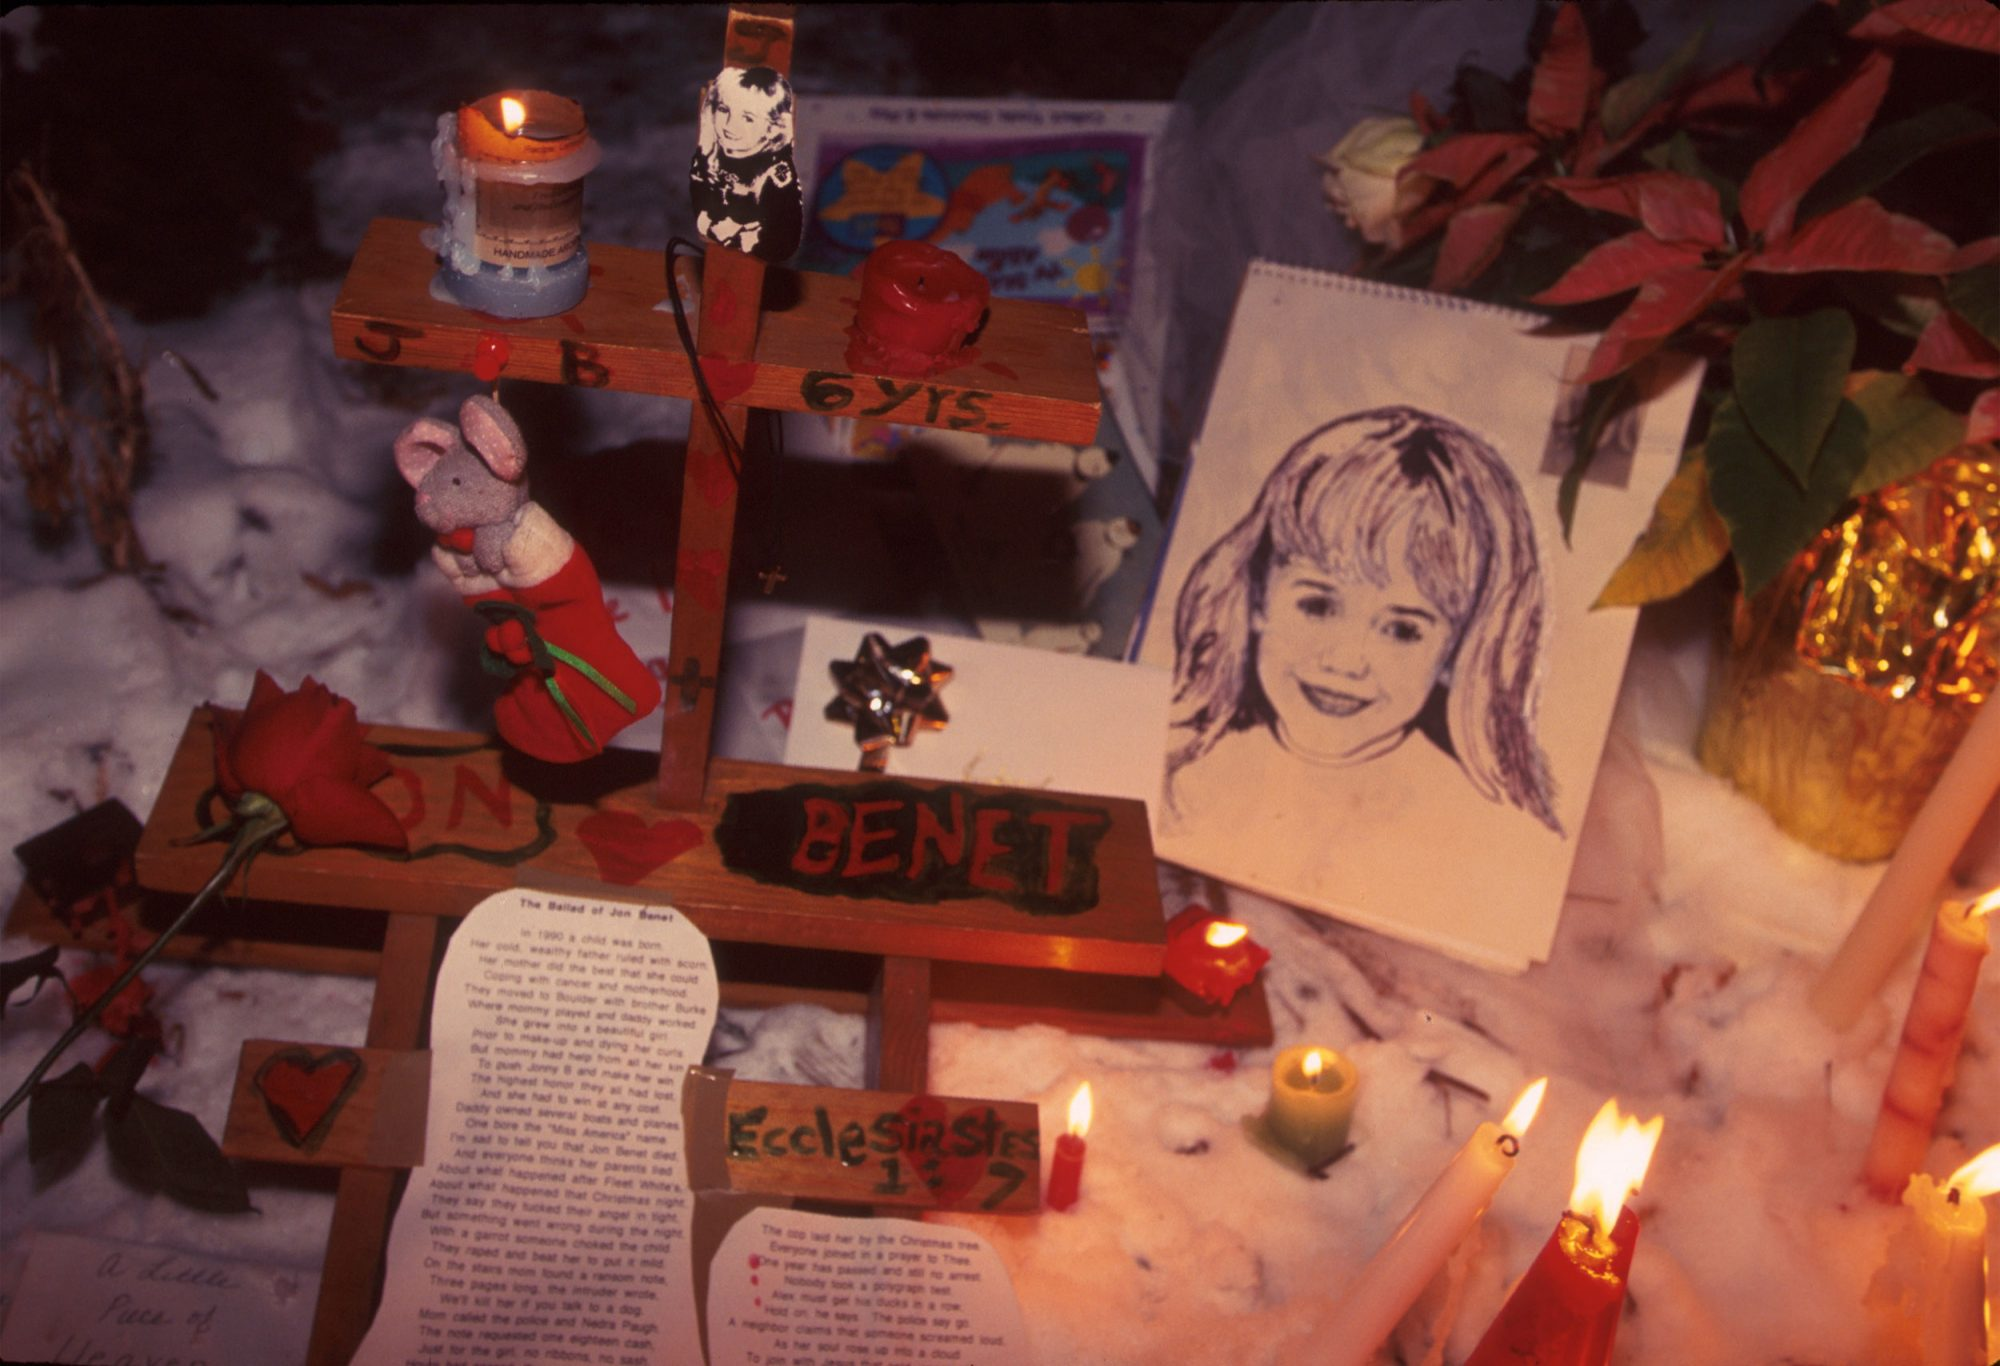 EC: Was JonBenet Ramsey Killed Over a Bowl of Pineapple and Milk?